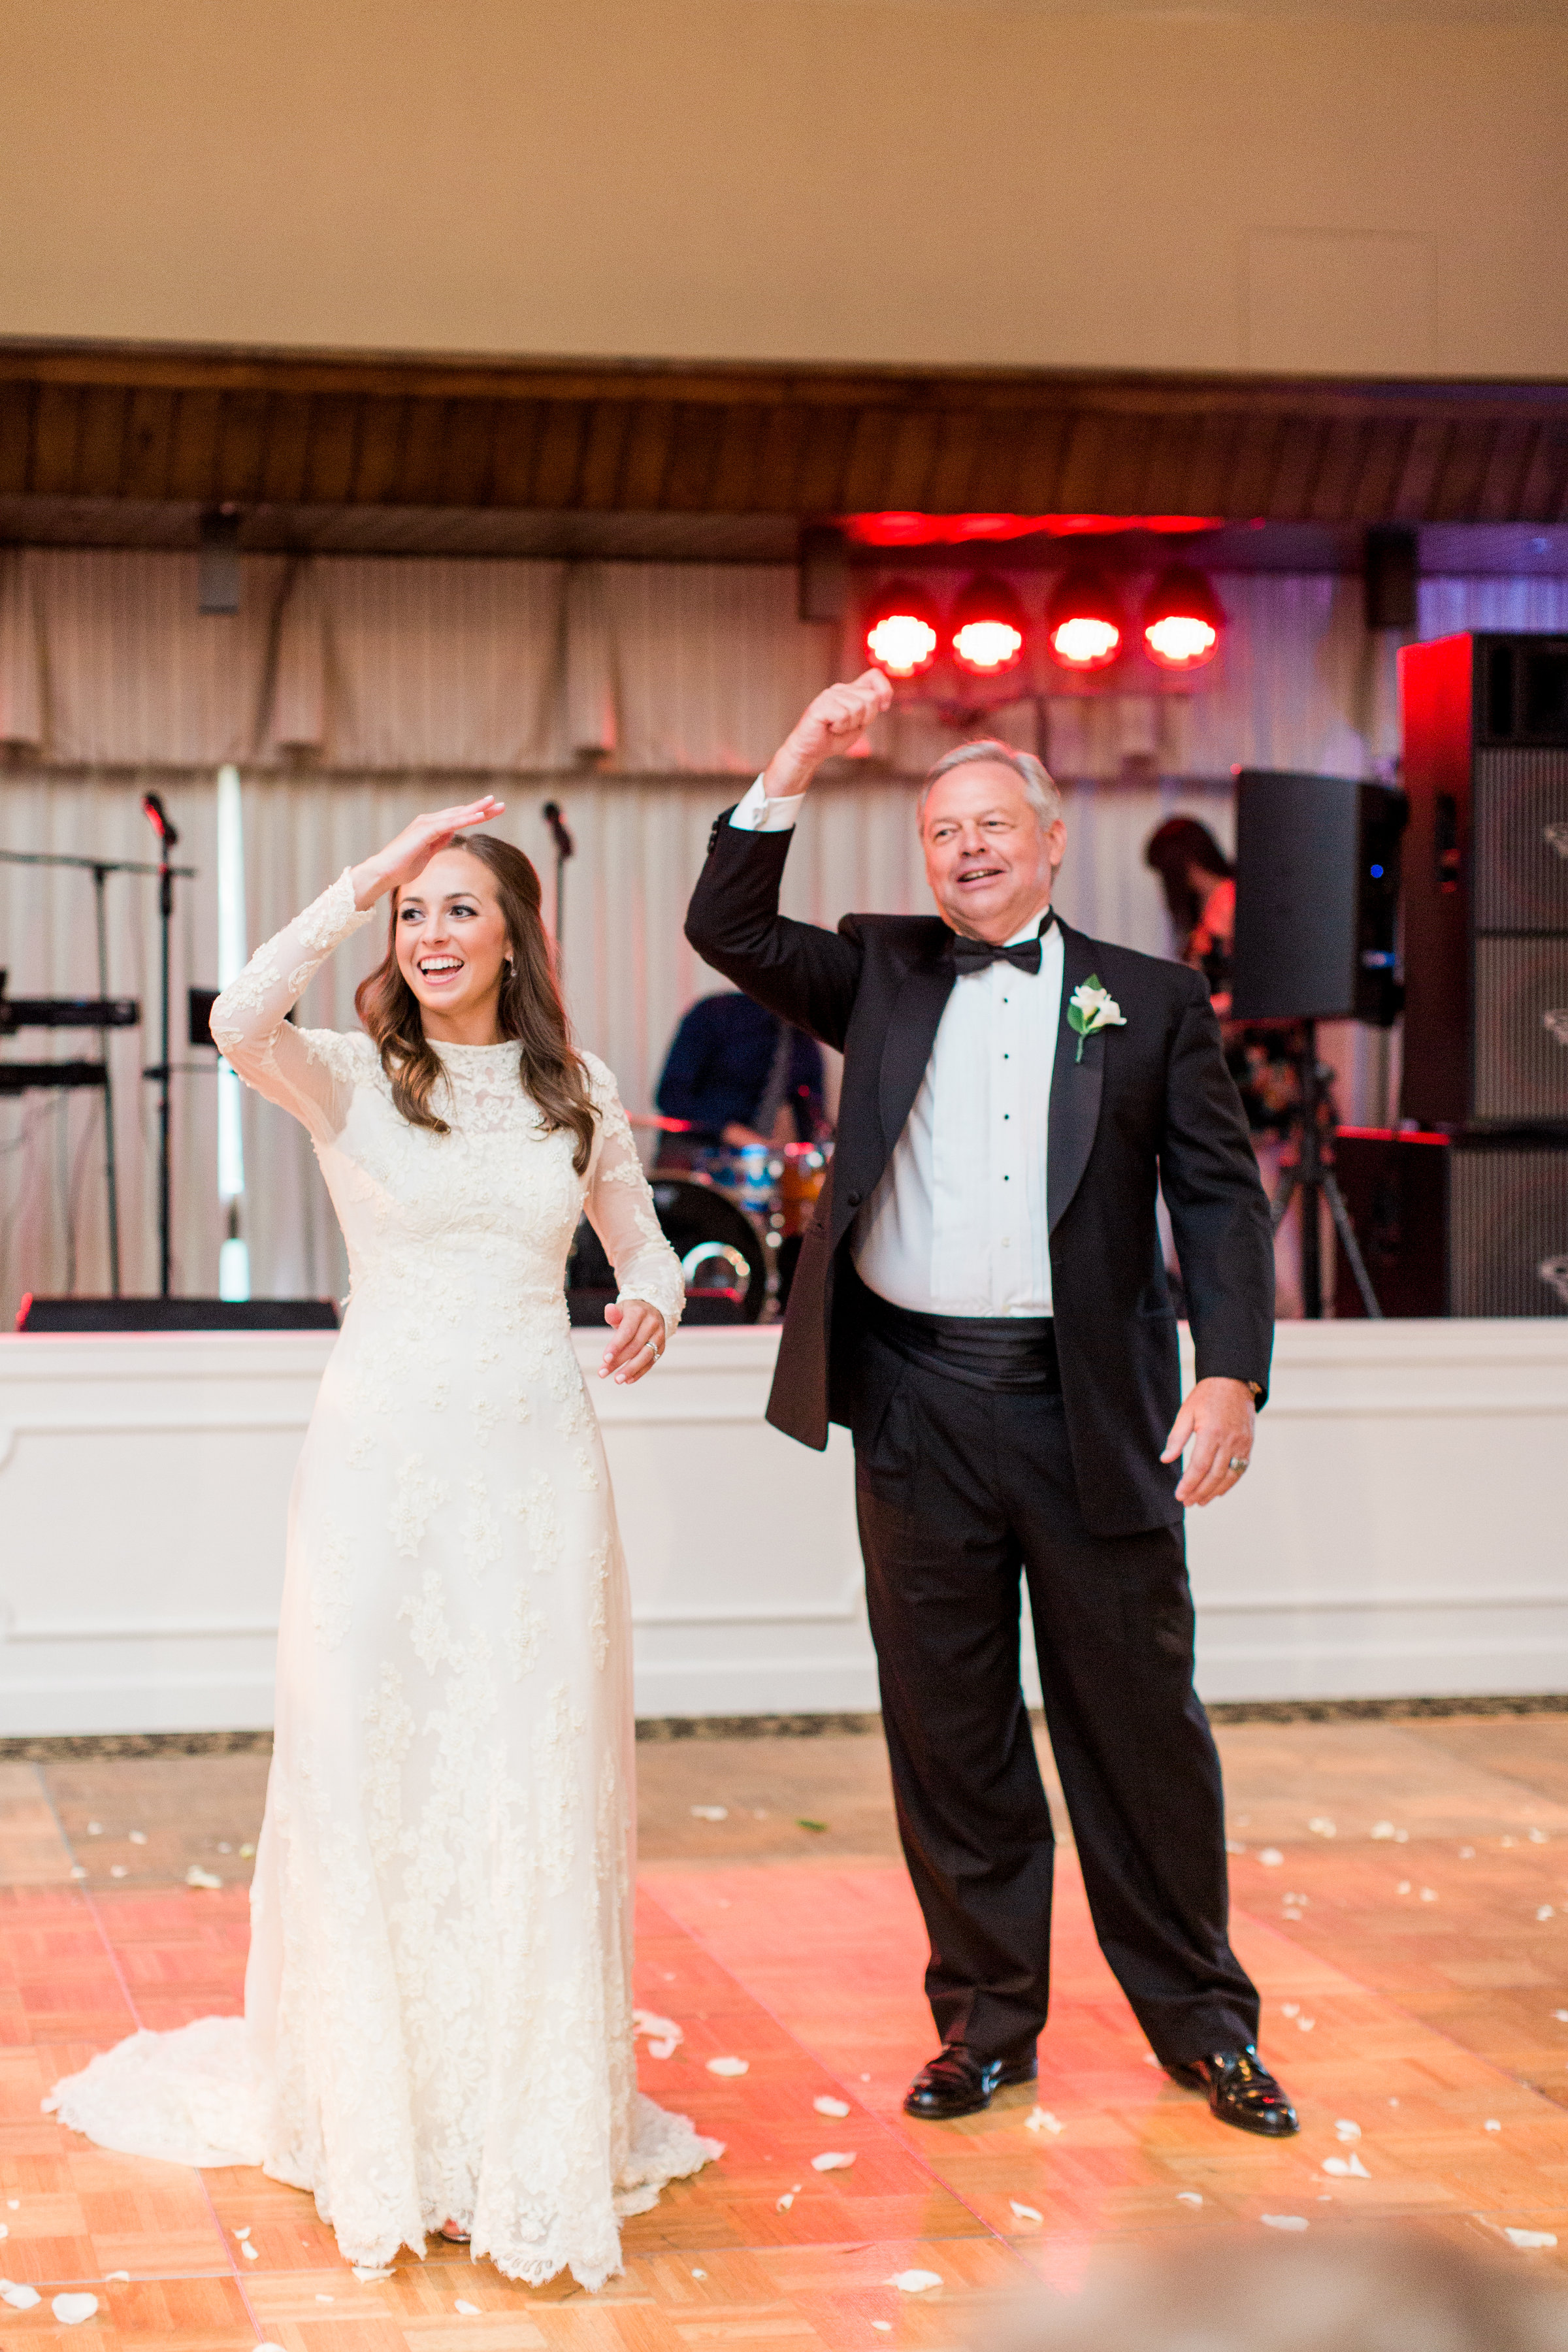 Both my parents went to the University of Arkansas and anyone who knows my dad knows how much he loves his Razorbacks. It only seemed fitting for us to do our dance to the Arkansas Fight song followed by the classic hog call. Woo Pig Sooie!